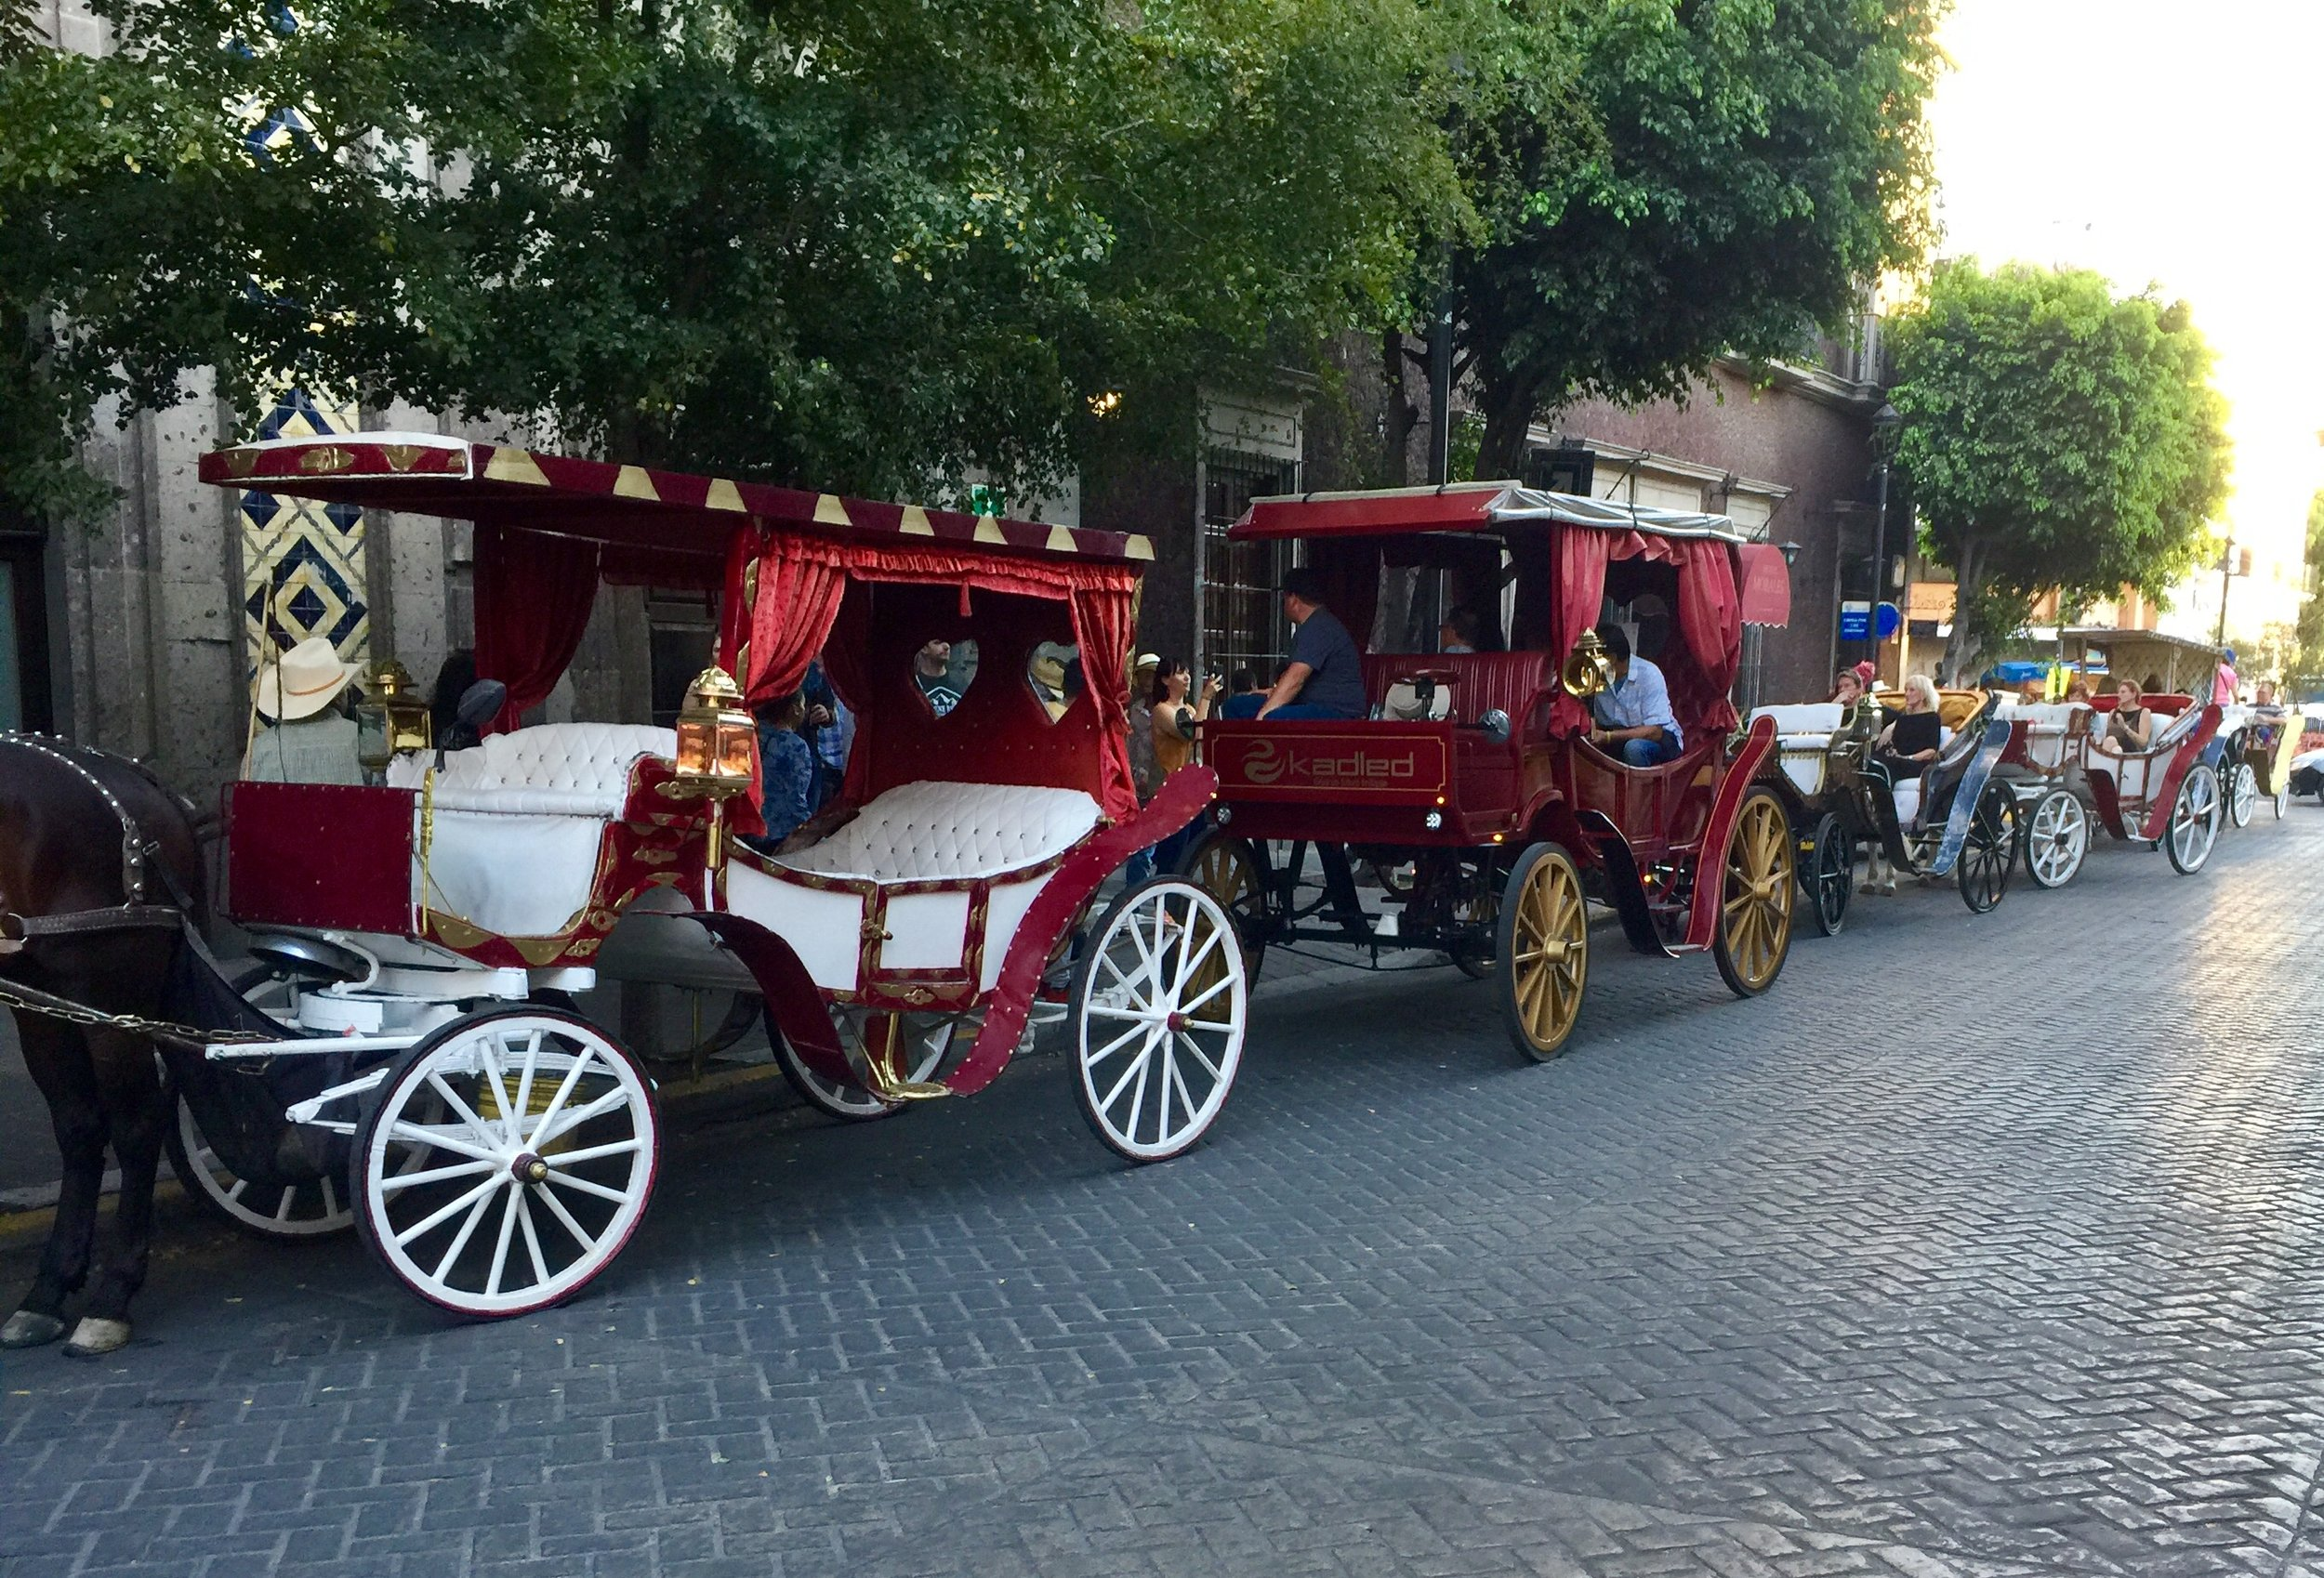 Horse drawn carriages lining up to take us on a tour of Guadalajara's central historical district.